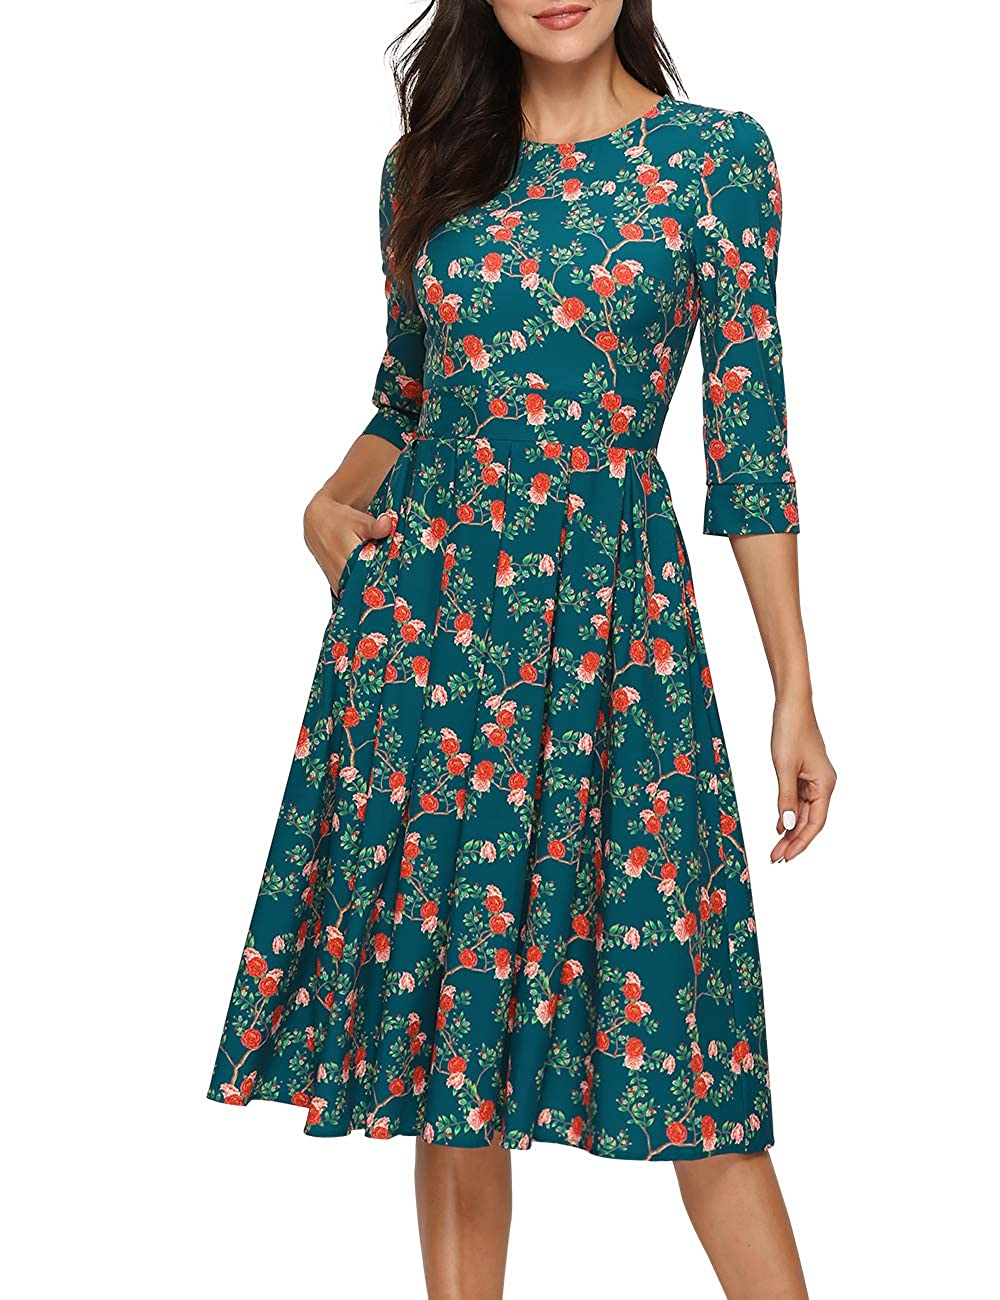 1930s Day Dresses, Afternoon Dresses History Simple Flavor Womens Floral Vintage Dress Elegant Midi Evening Dress 3/4 Sleeves $26.99 AT vintagedancer.com